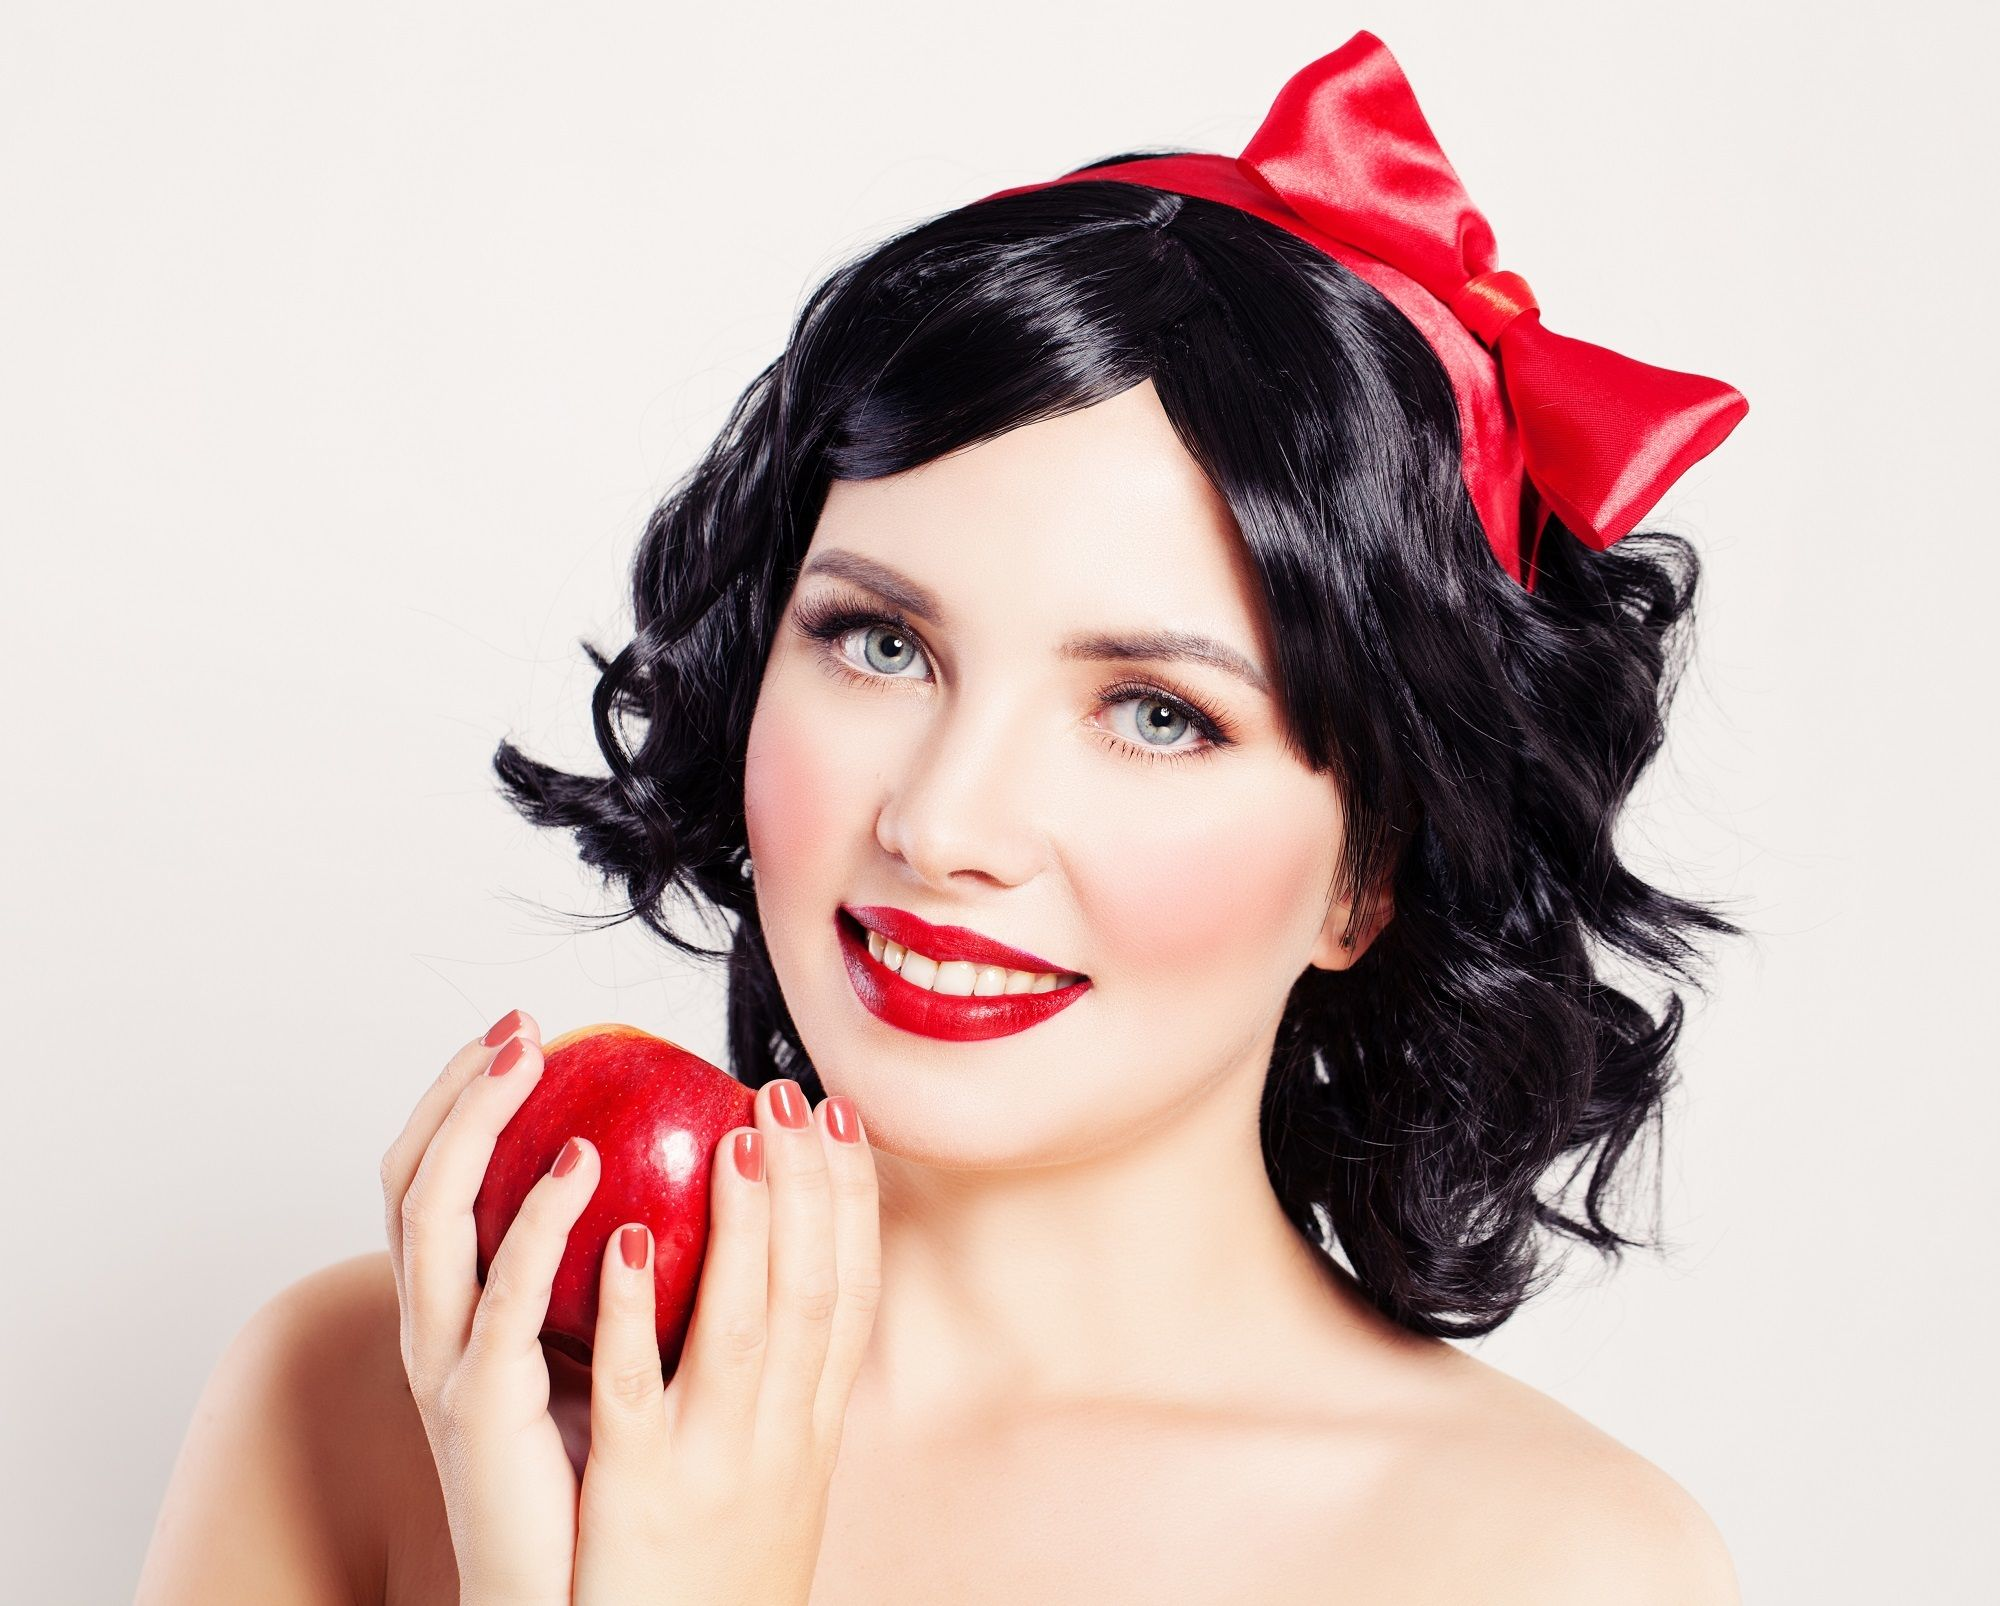 Anime hairstyles: Closeup shot of woman with short curly black hair and red ribbon on hair holding an apple